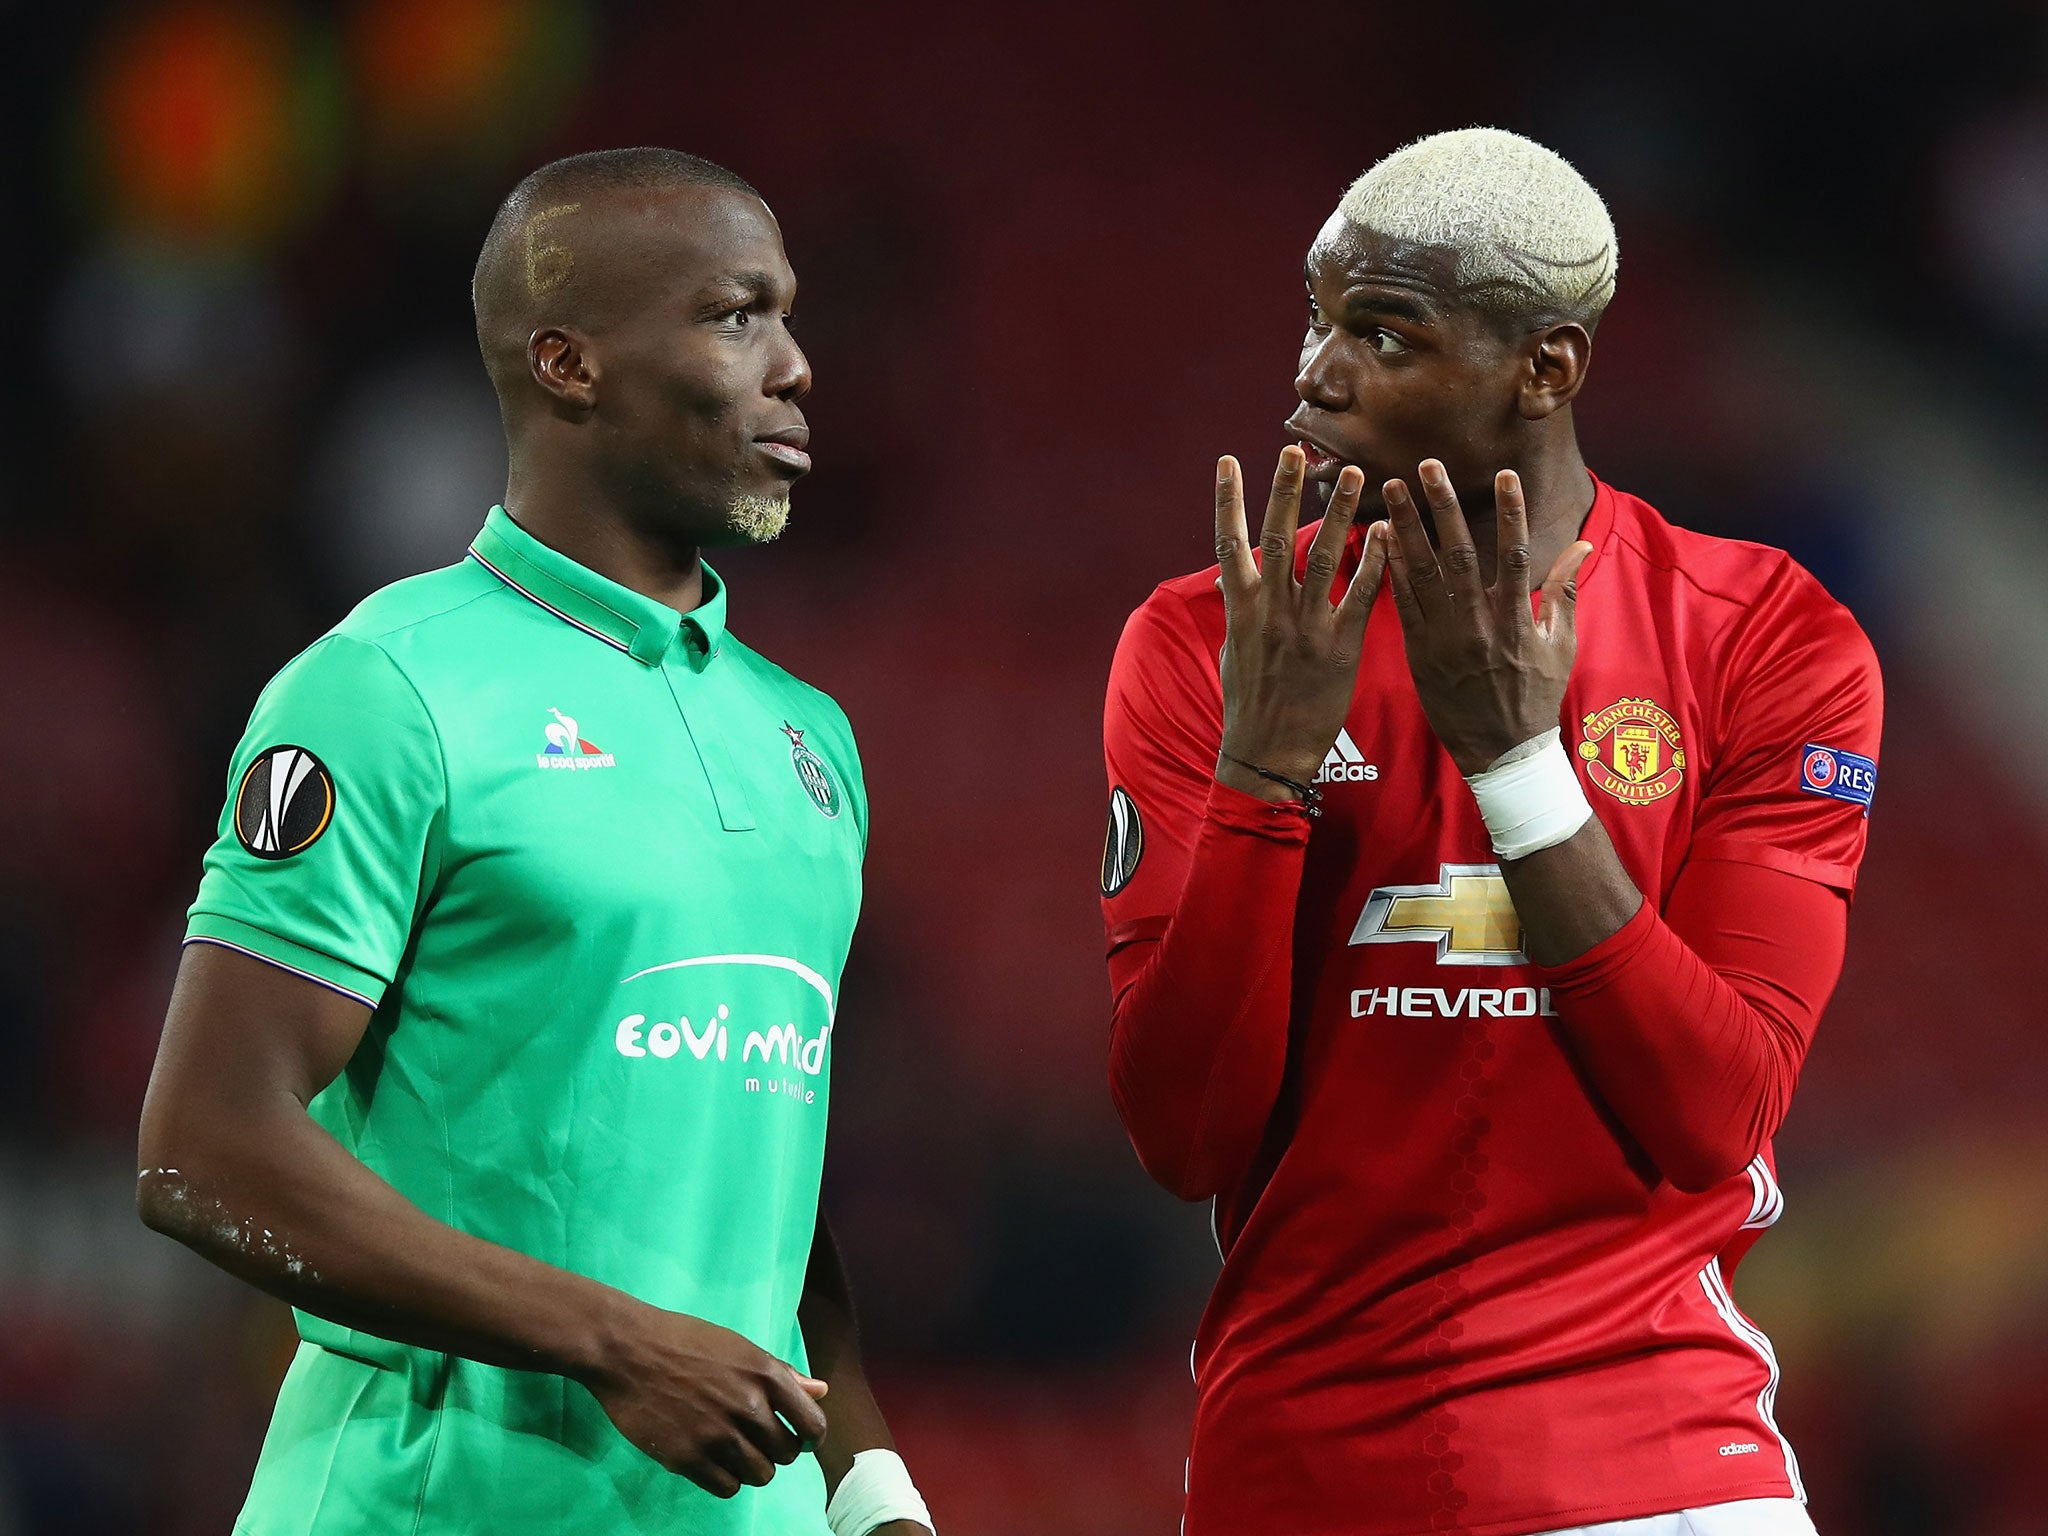 Paul Pogba bothered me by talking to his brother during